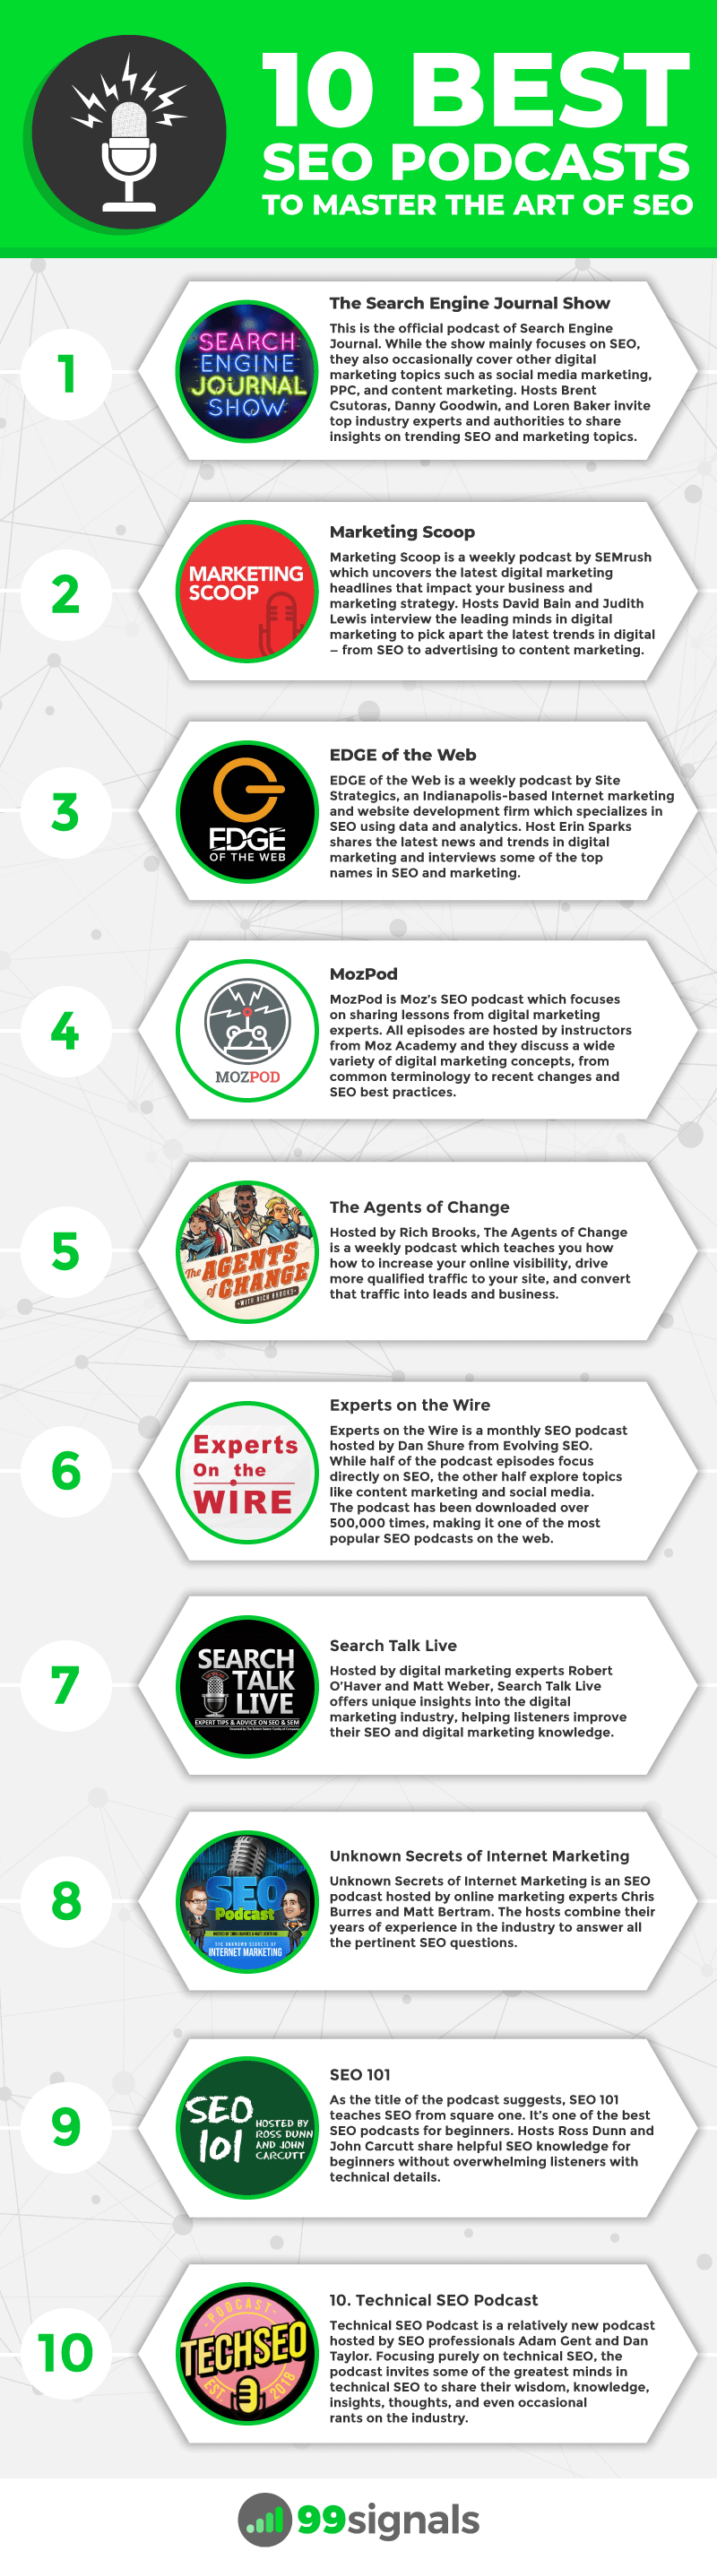 10 Best SEO Podcasts to Master the Art of SEO #infographic